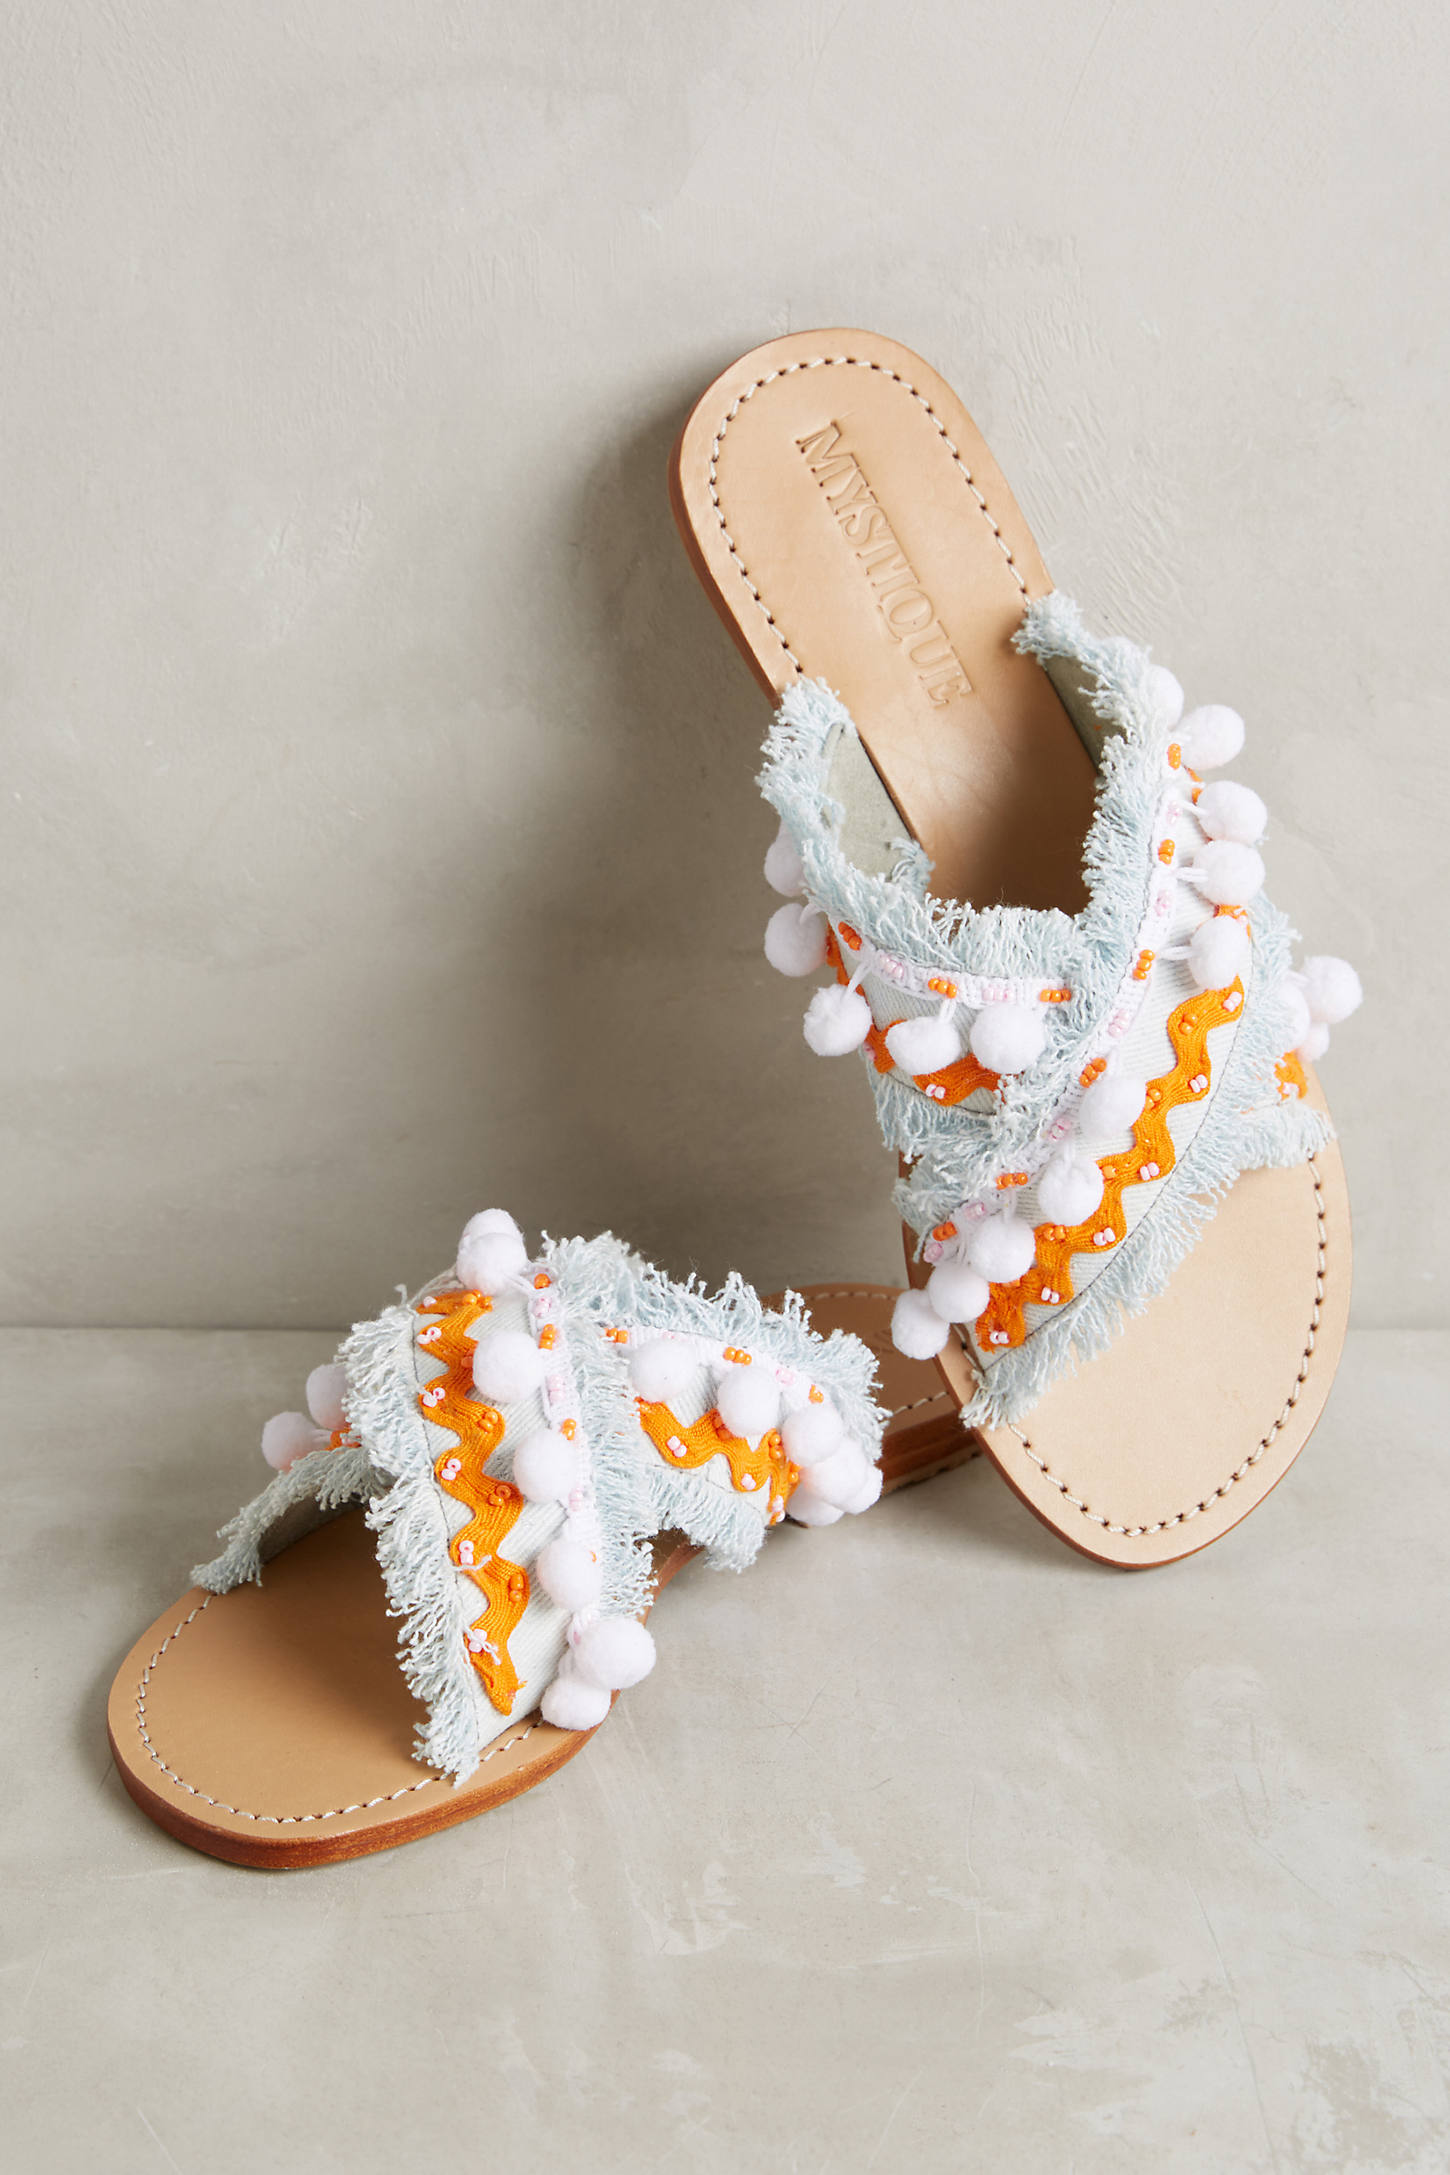 Mystique Bali Slide Sandals